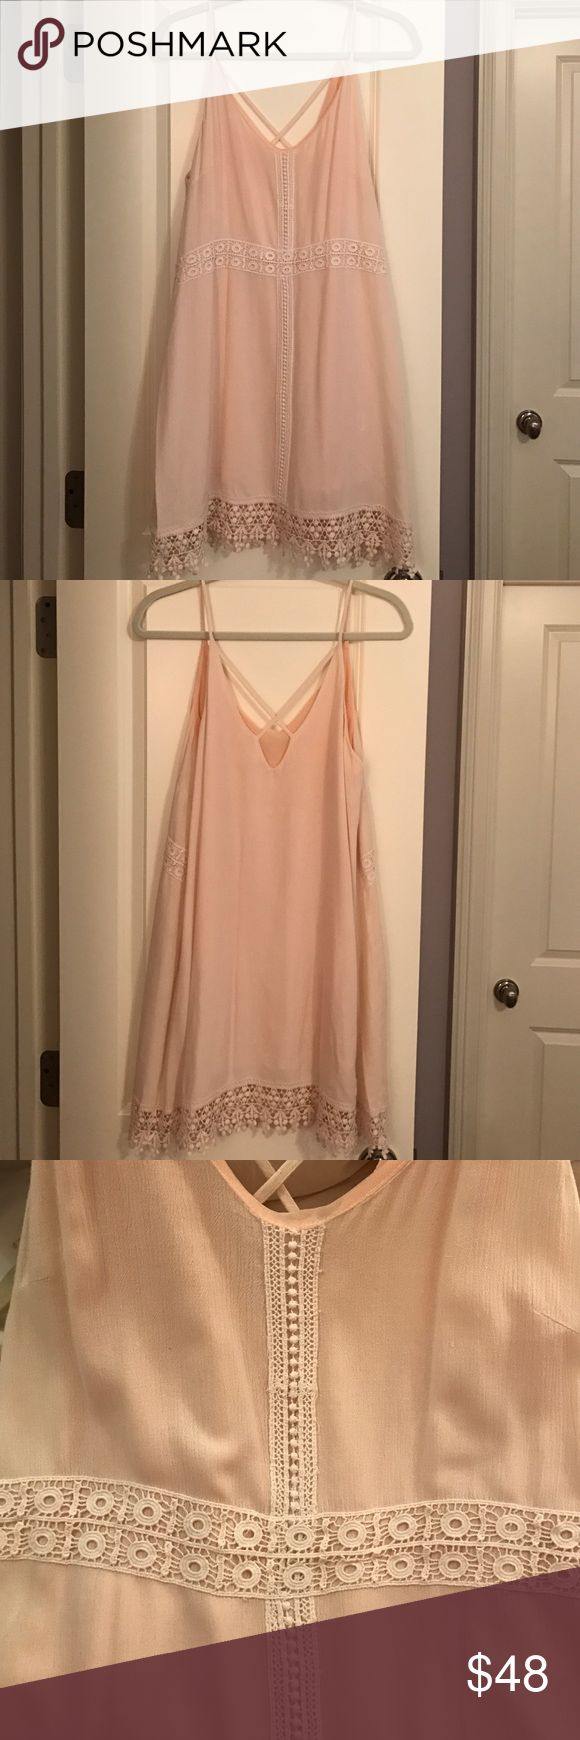 L U S H Pink Lace Trim Dress •From LuLu's boutique in Dallas, TX                             •Worn once// Very comfy                                                        •Tag on inside says Medium but it's baggy enough to fit someone who is M/L Lush Dresses Mini